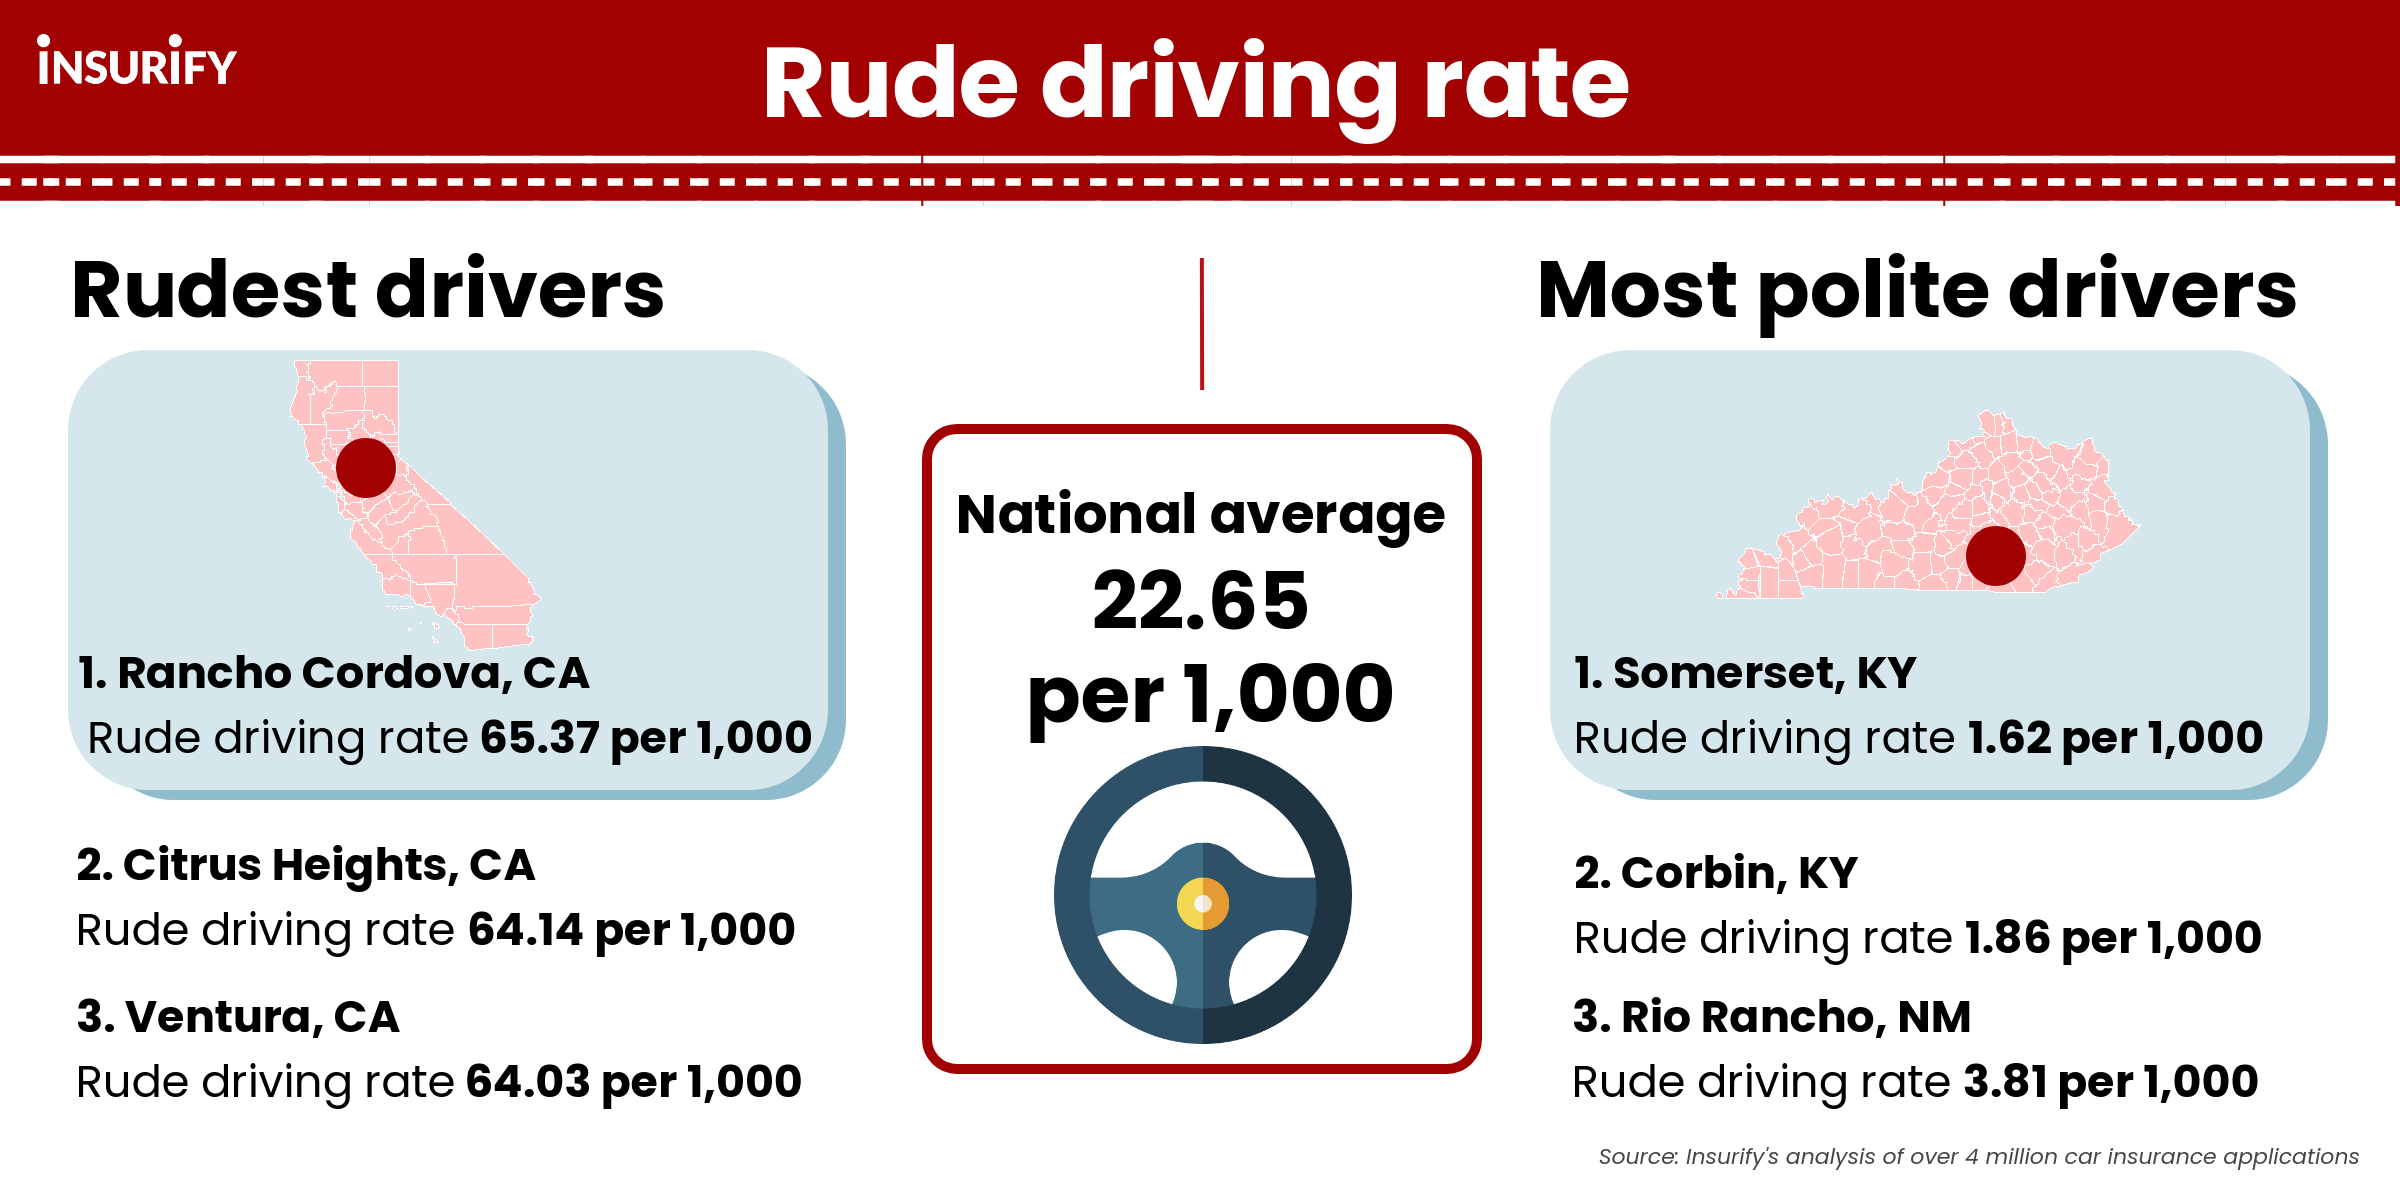 Graphic showing the cities with the rudest drivers in the U.S. in 2021.